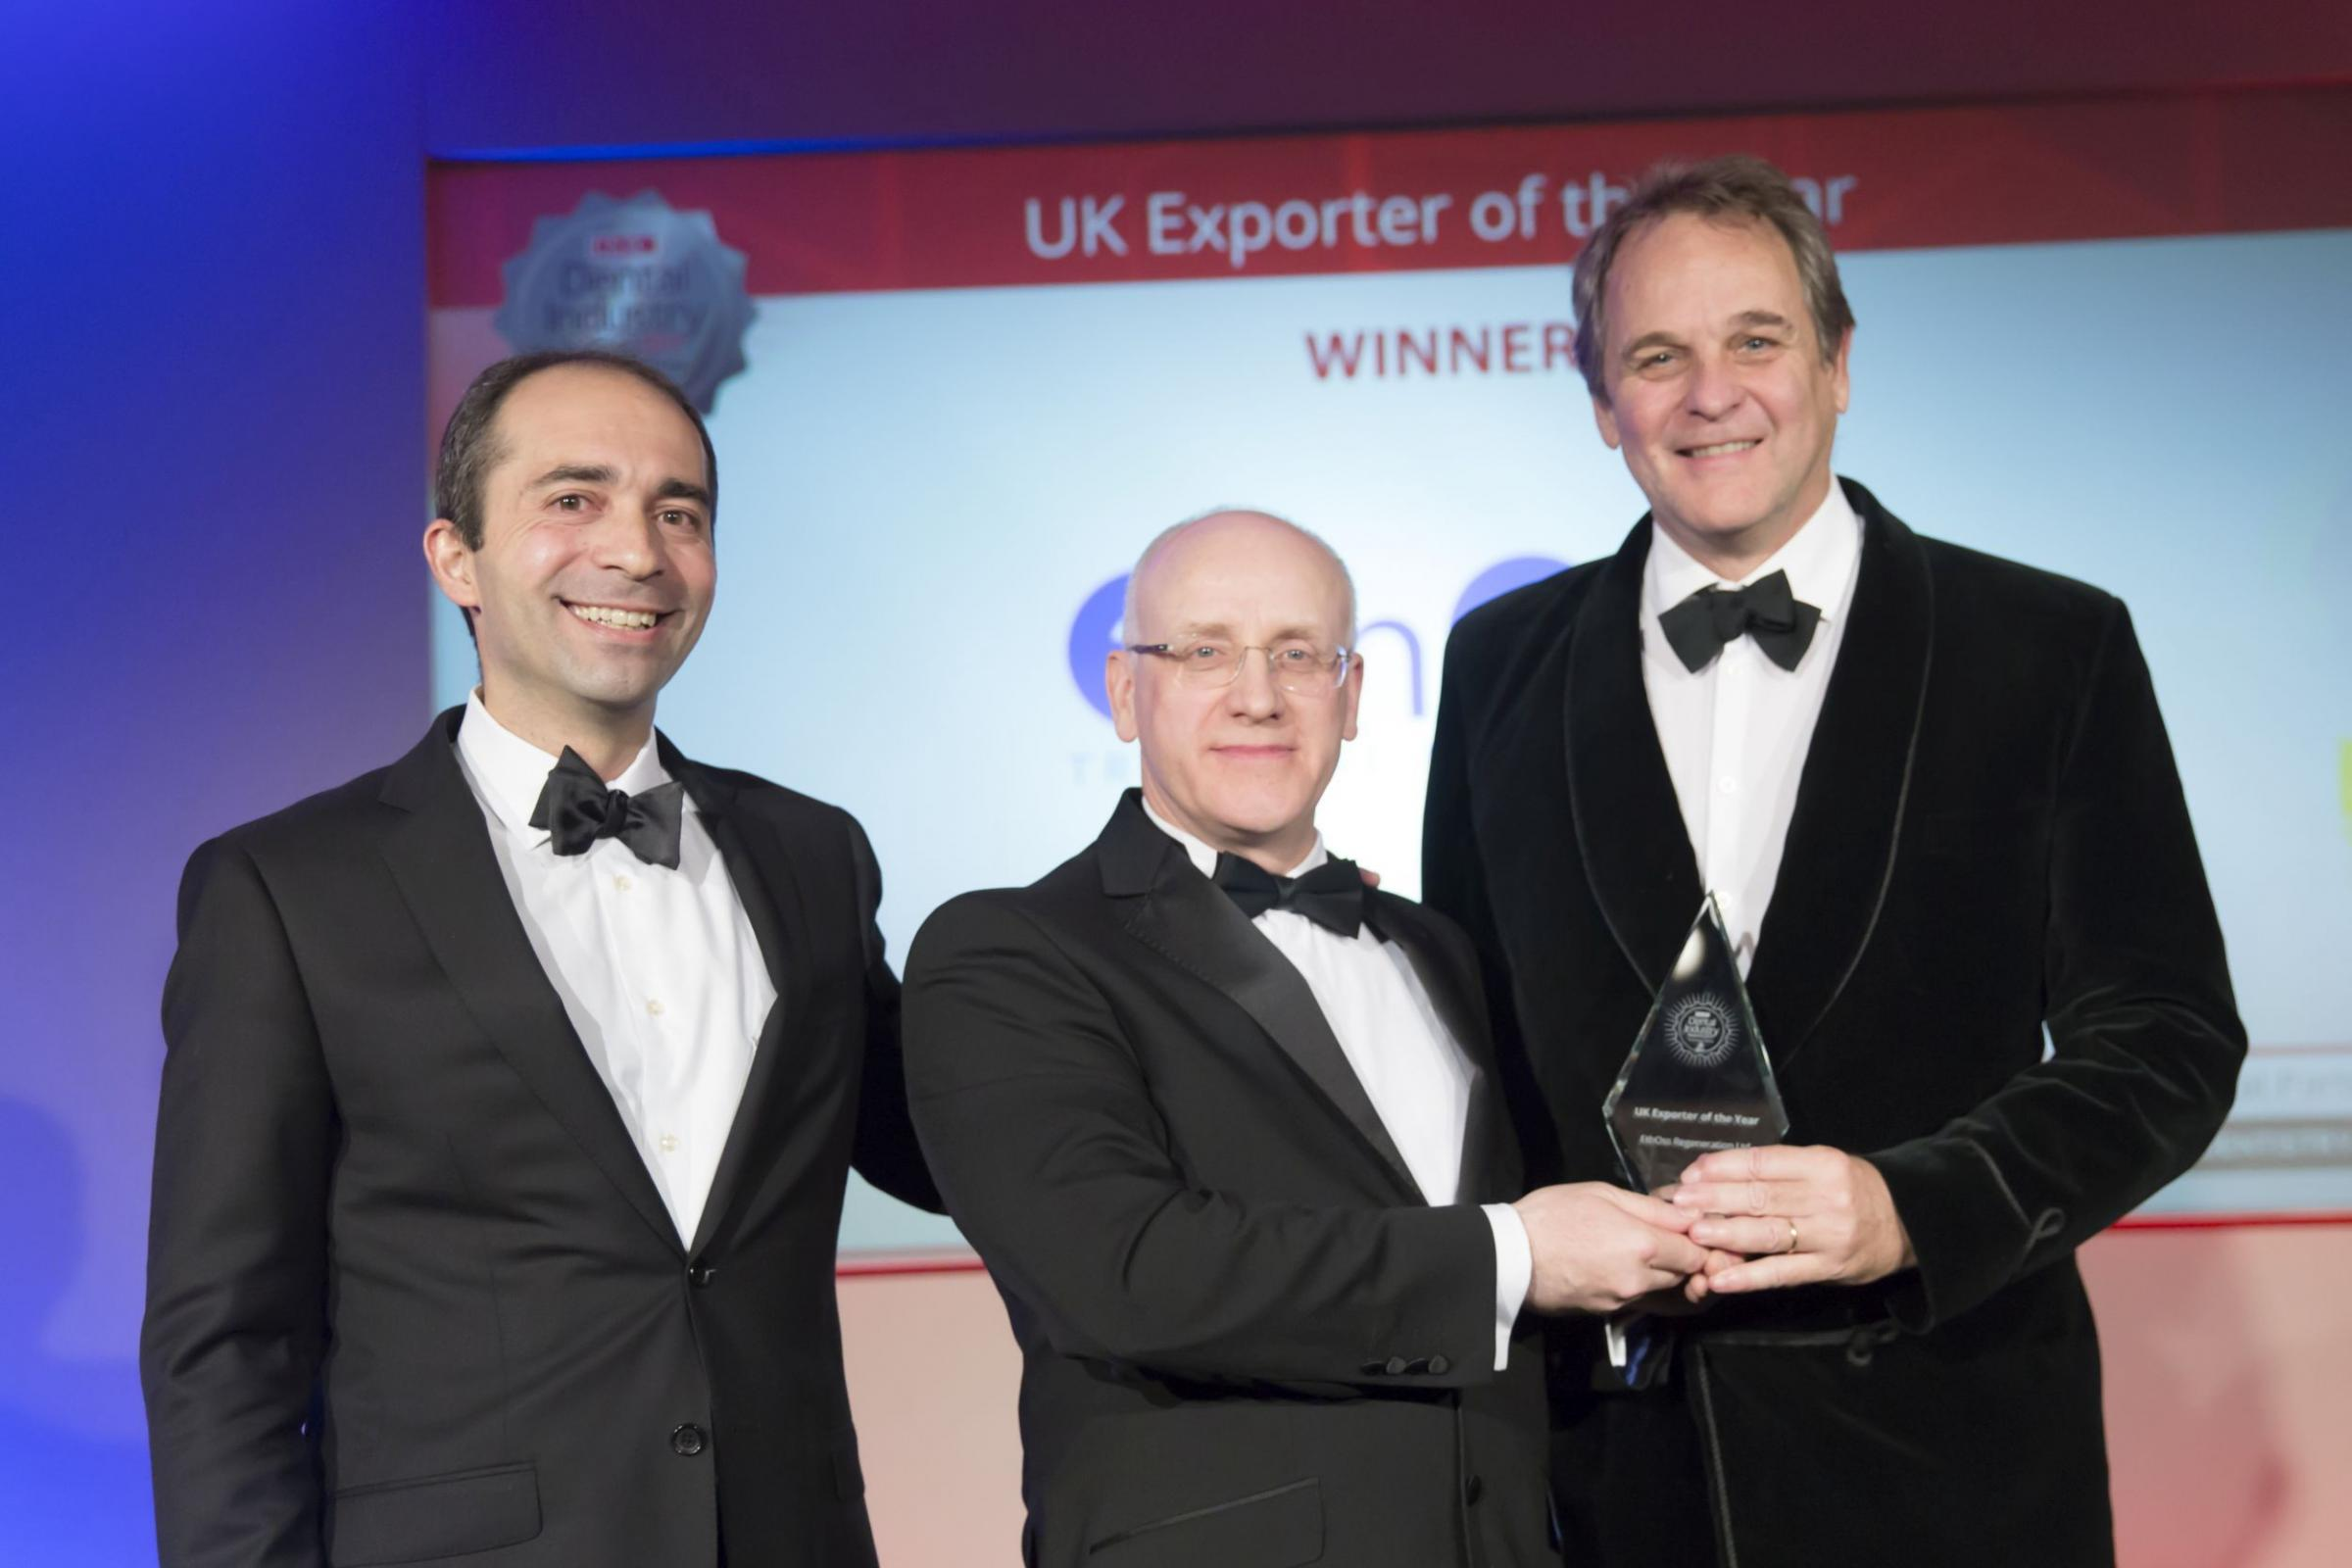 The EthOss Regeneration Ltd team receives its Exporter of the Year accolade at the Dental Industry Awards